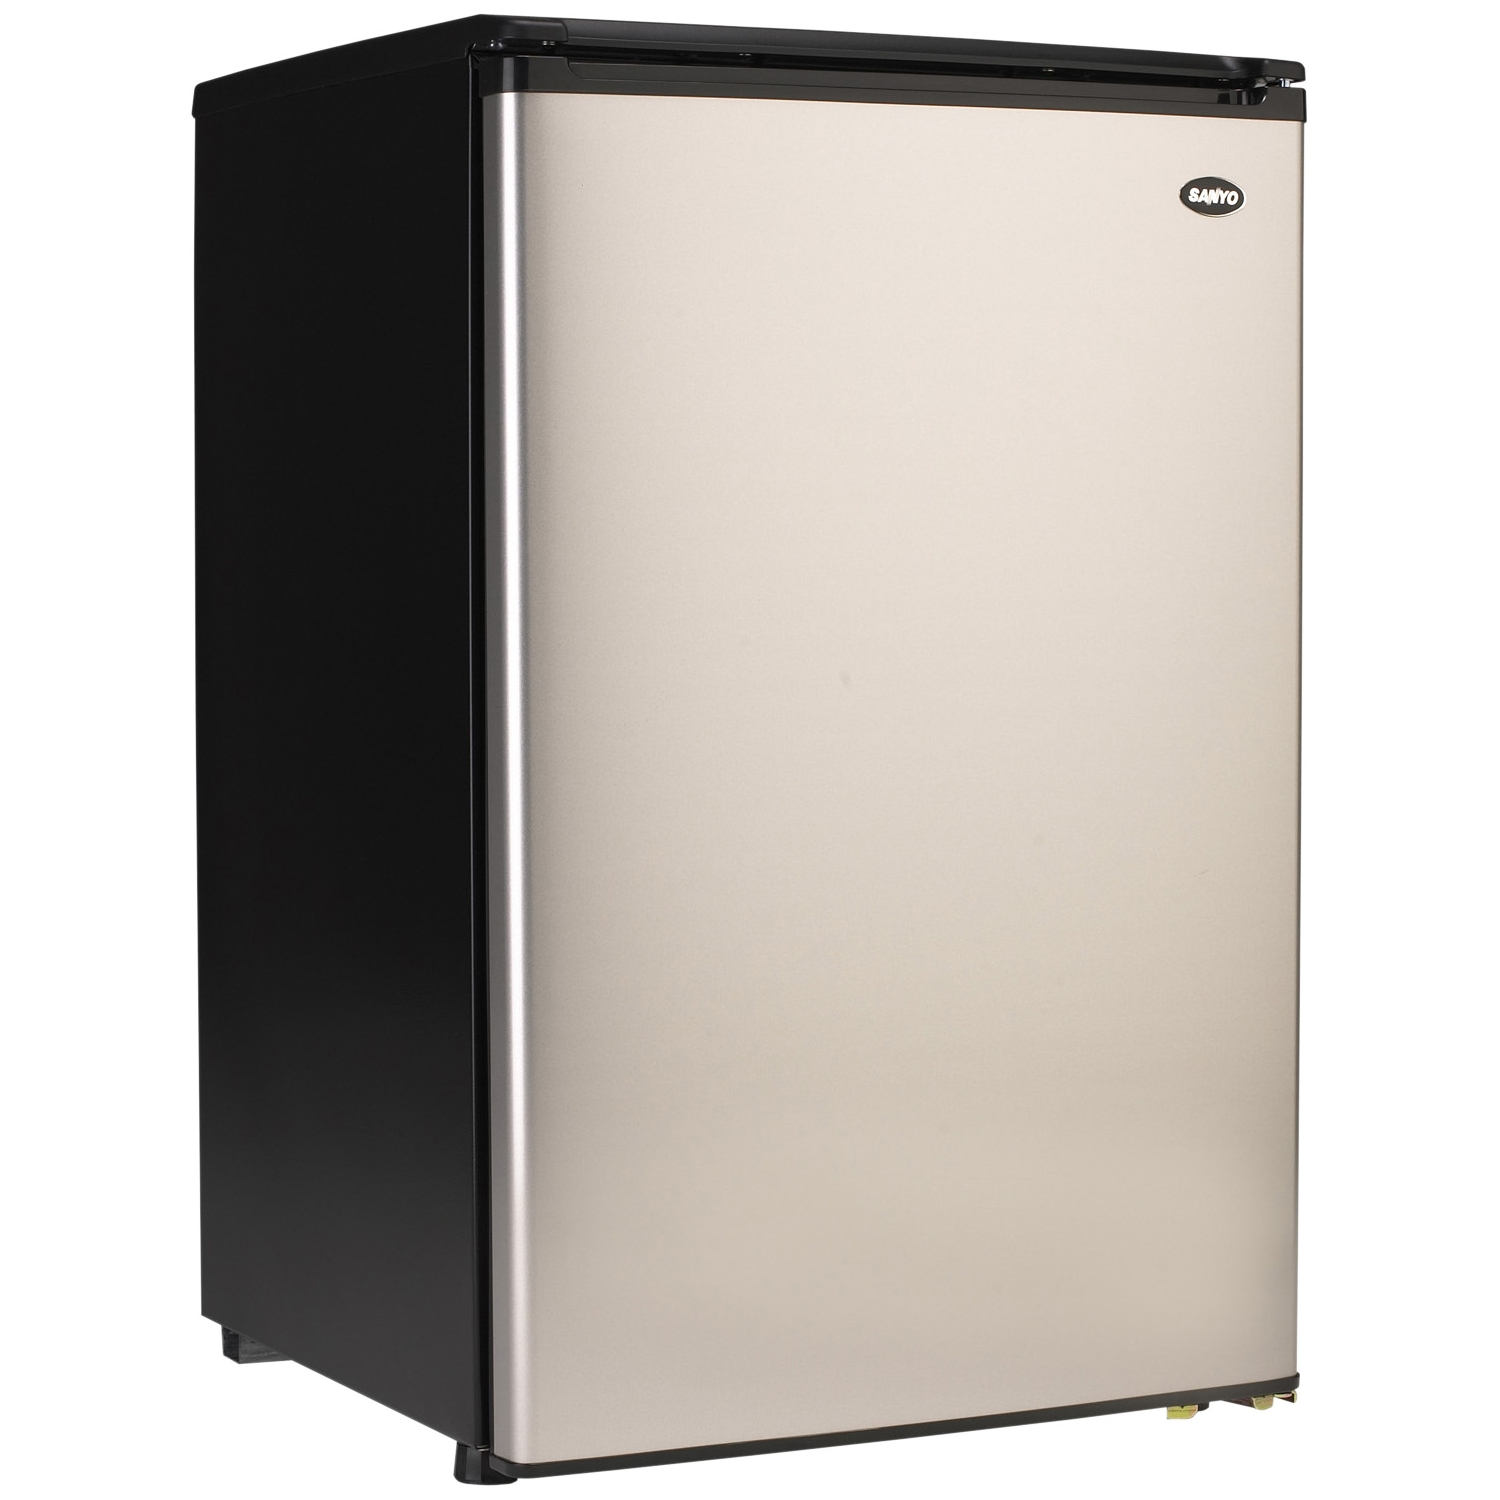 refrigerator 7 5 cu ft. sanyo 5-cu. ft. counter-high refrigerat refrigerator 7 5 cu ft e